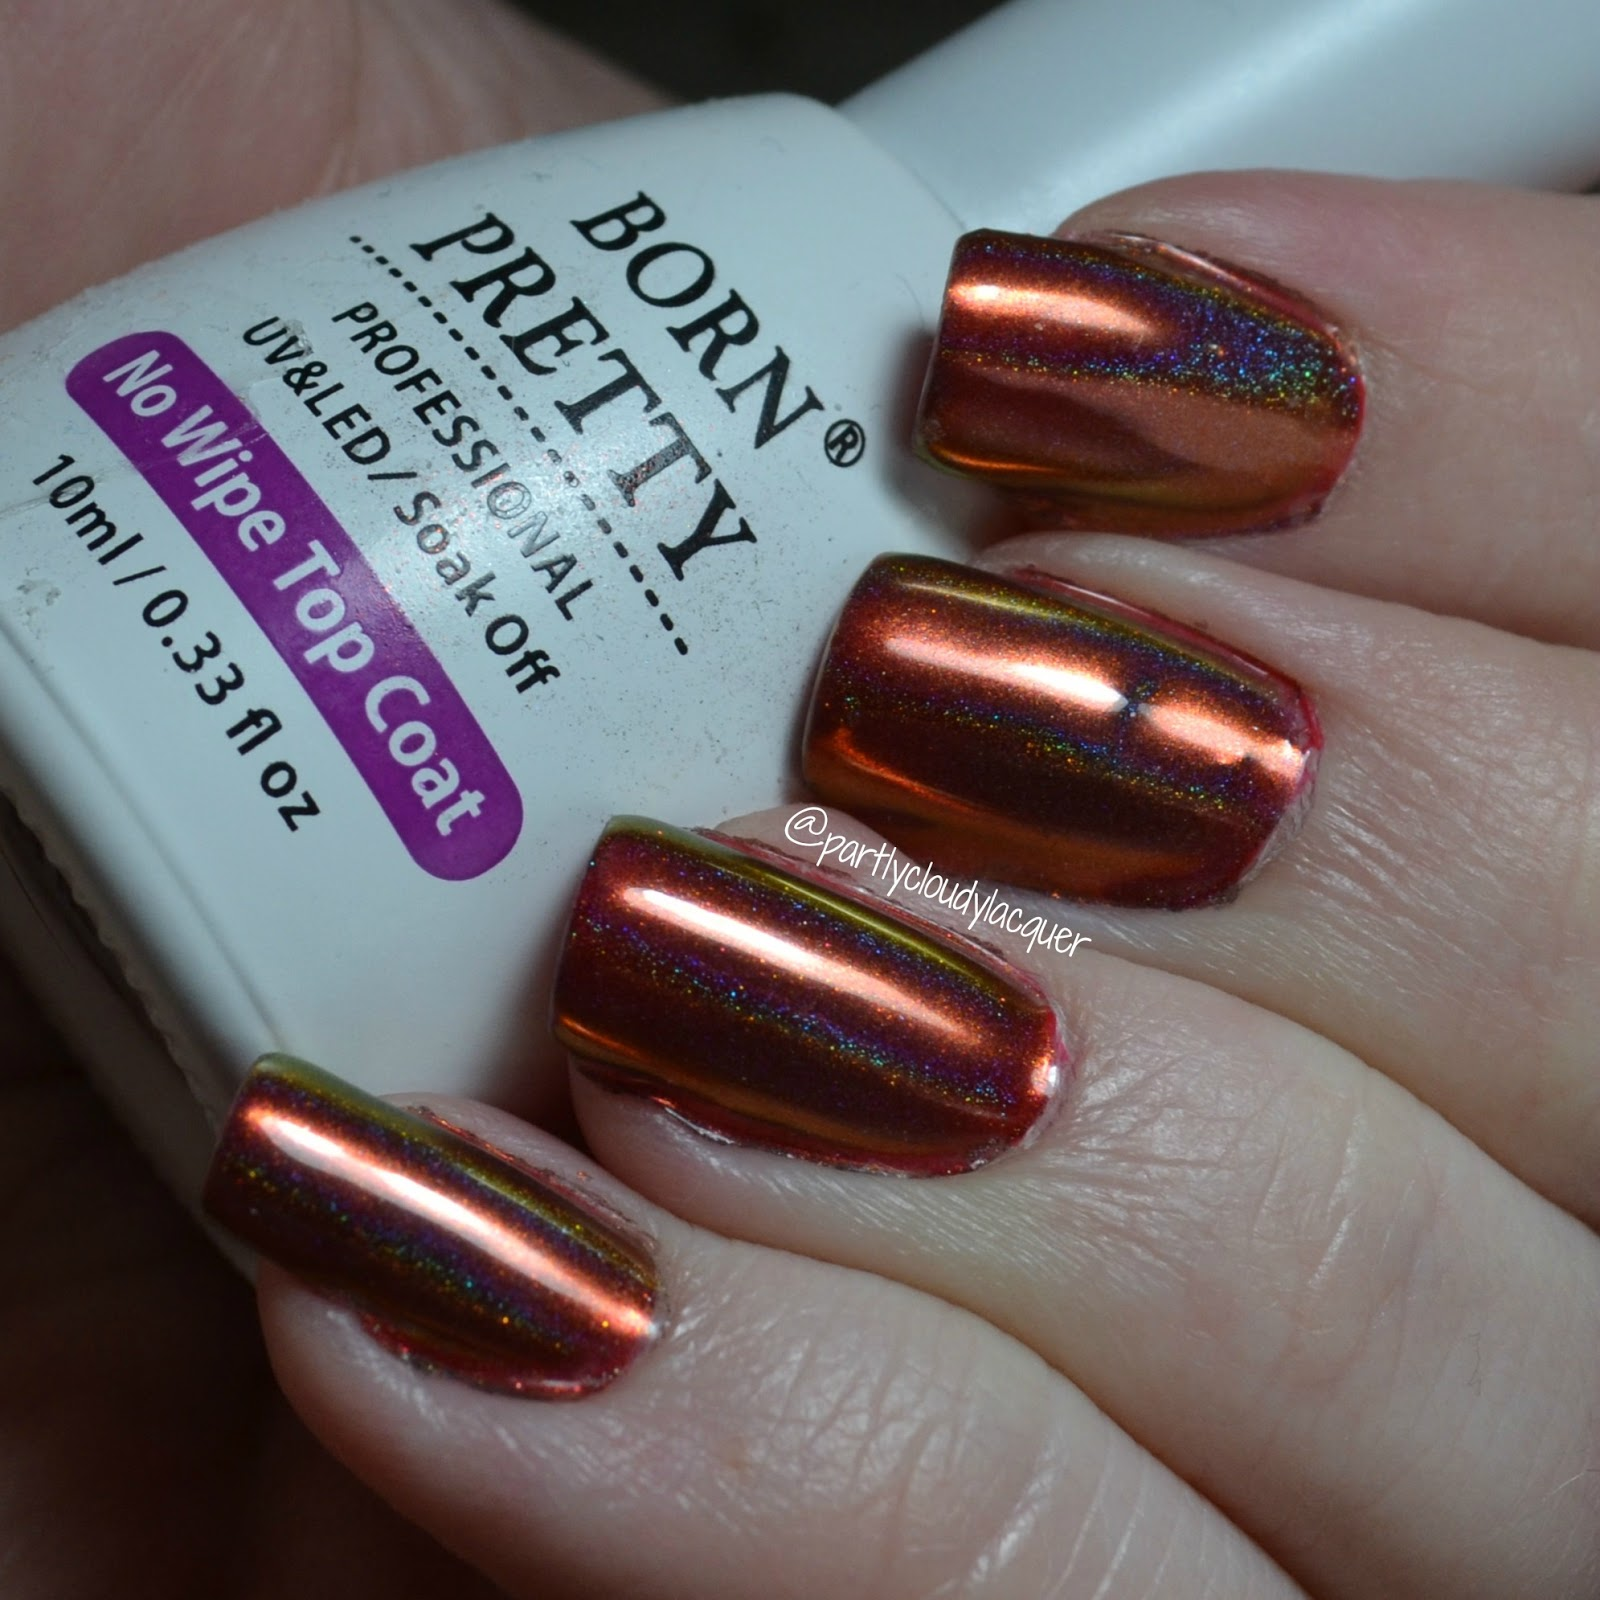 Born Pretty Store No Wipe Topcoat and Holographic Chameleon Nail ...